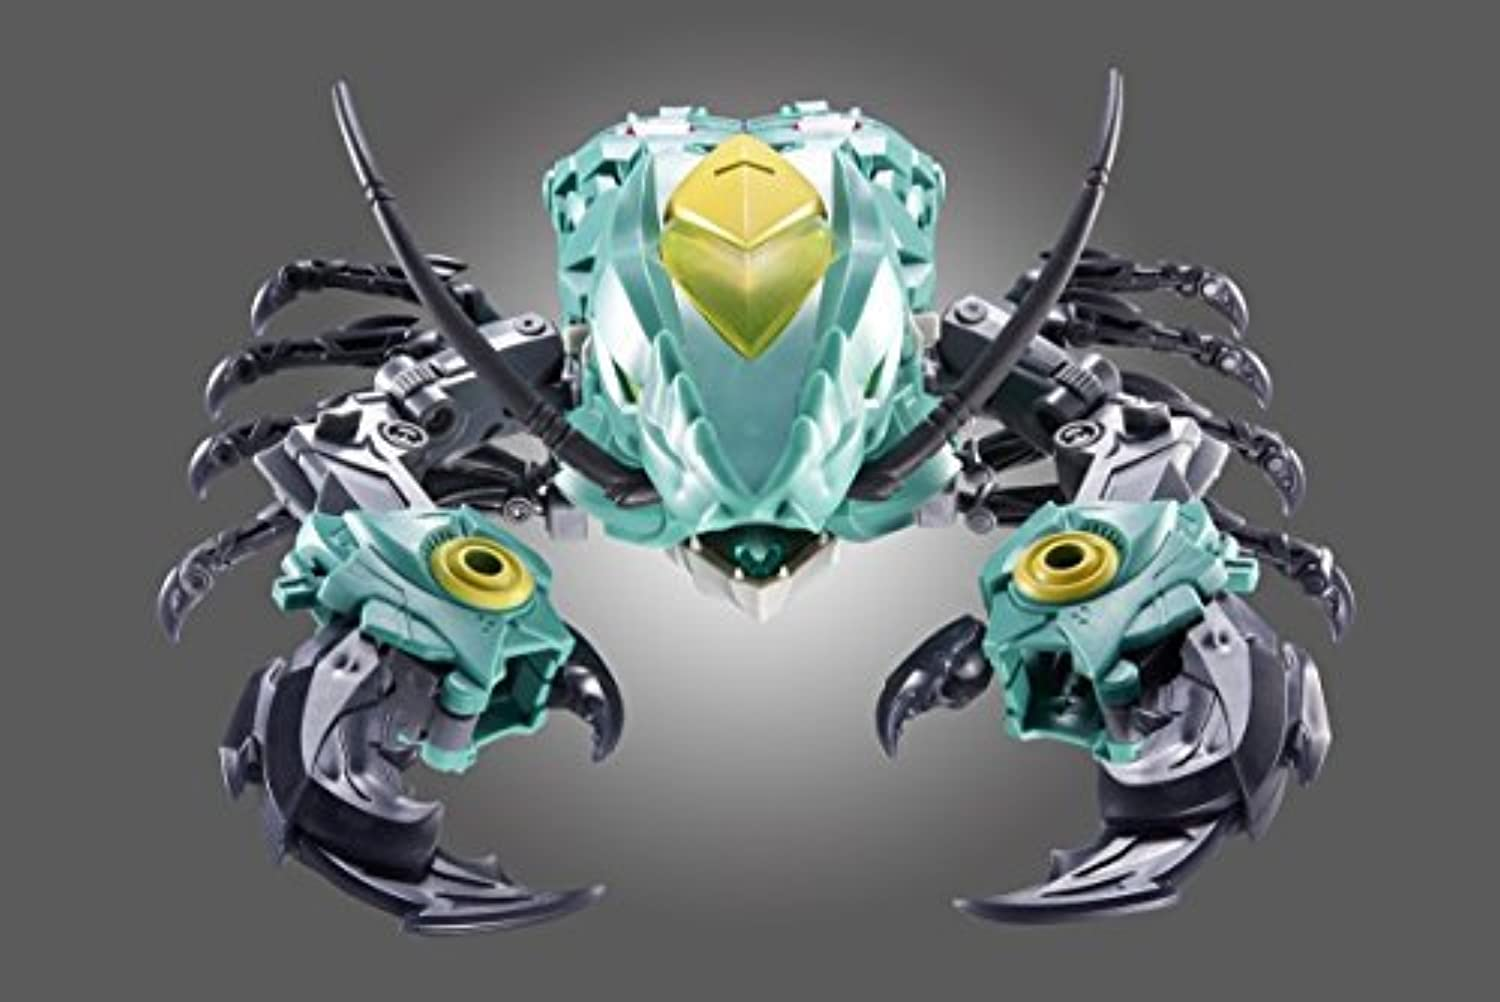 STERLING Transformers P-05 Poseidon Deathclaw